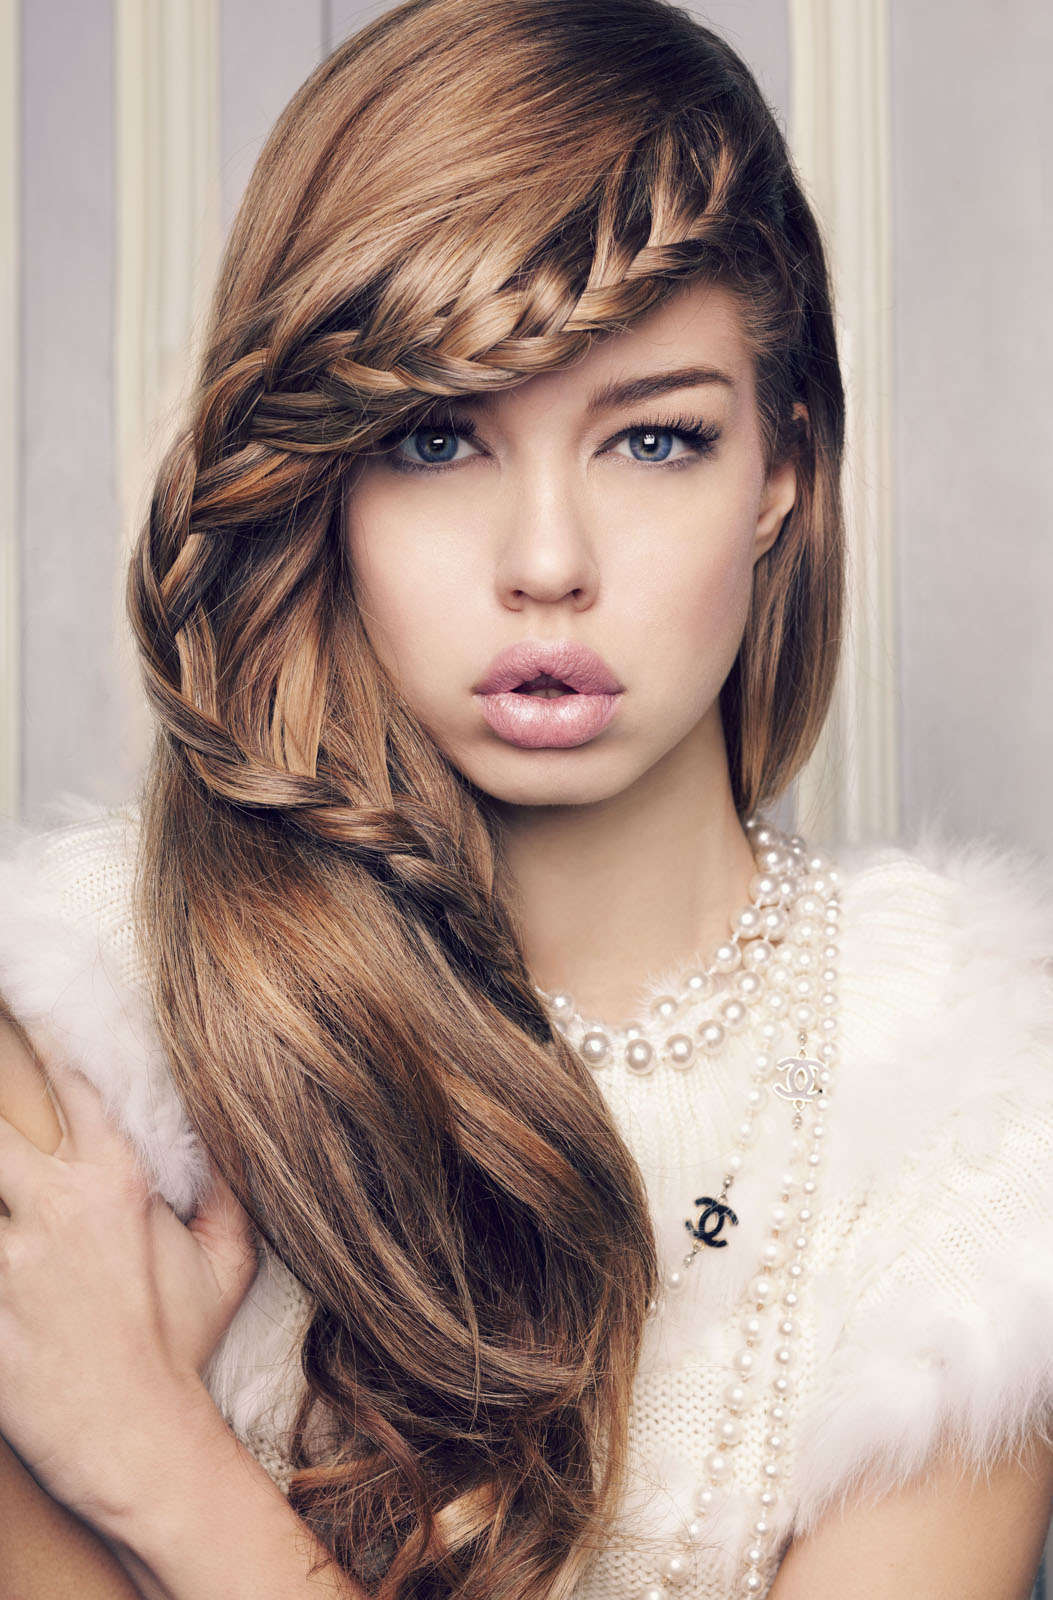 Phenomenal 24 Gorgeously Creative Braided Hairstyles For Women Styles Weekly Short Hairstyles For Black Women Fulllsitofus